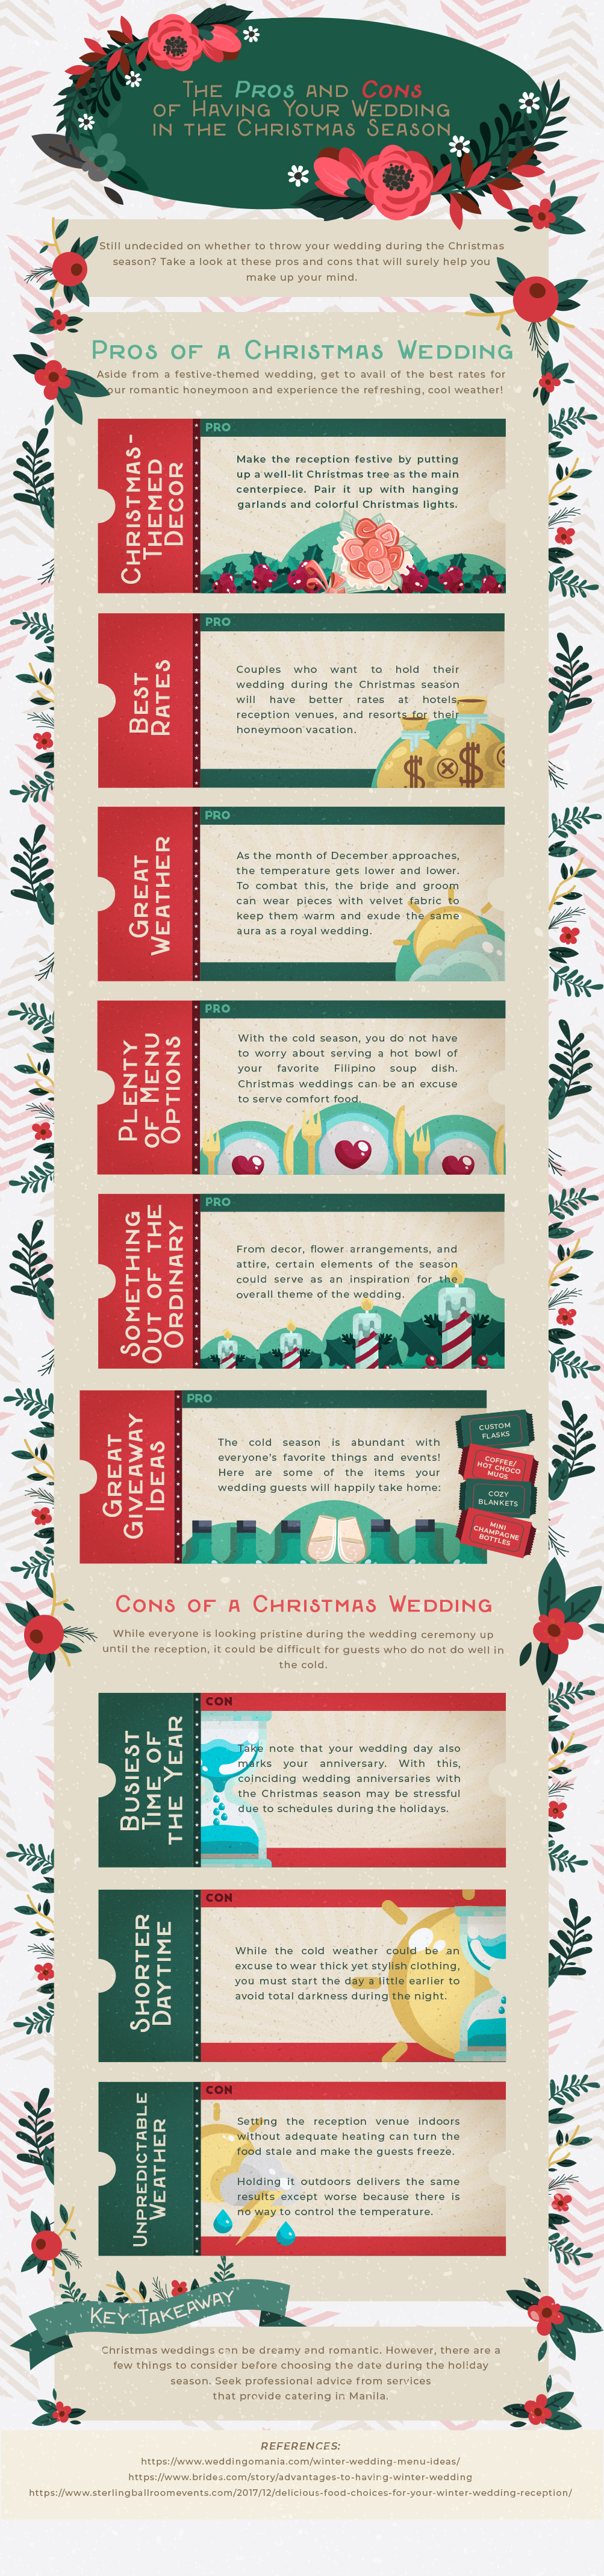 The-Pros-and-Cons-of-Having-Your-Wedding-in-the-Christmas-Season